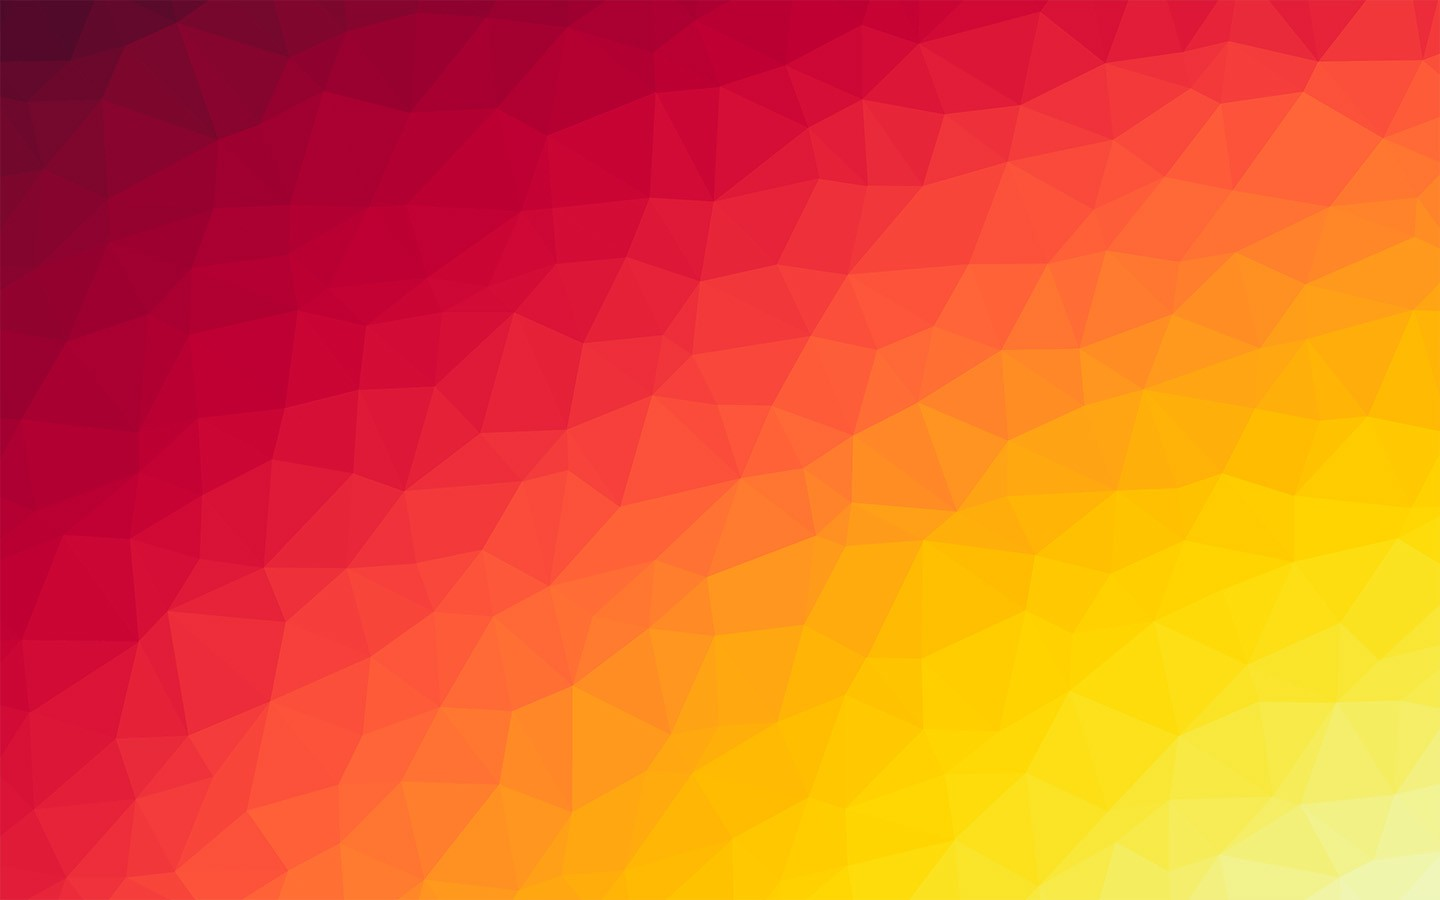 HTML Background Color HTML Color Codes 1440x900